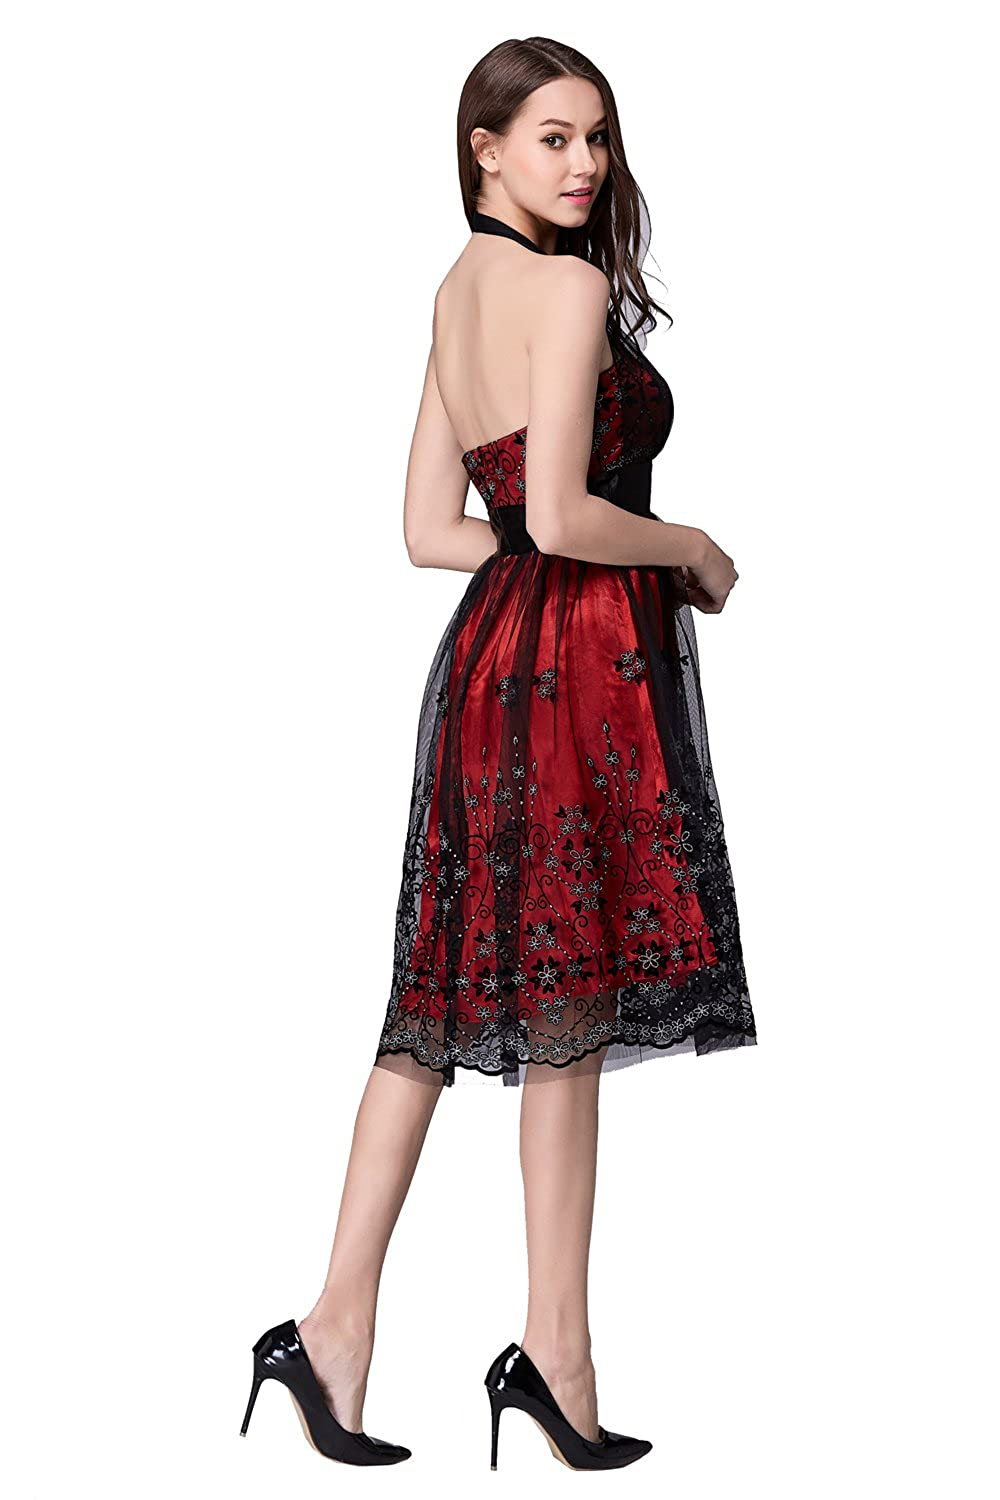 Luxy womens halter red 3d lace wedding prom dress short at amazon luxy womens halter red 3d lace wedding prom dress short at amazon womens clothing store cocktail dresses evening ombrellifo Choice Image